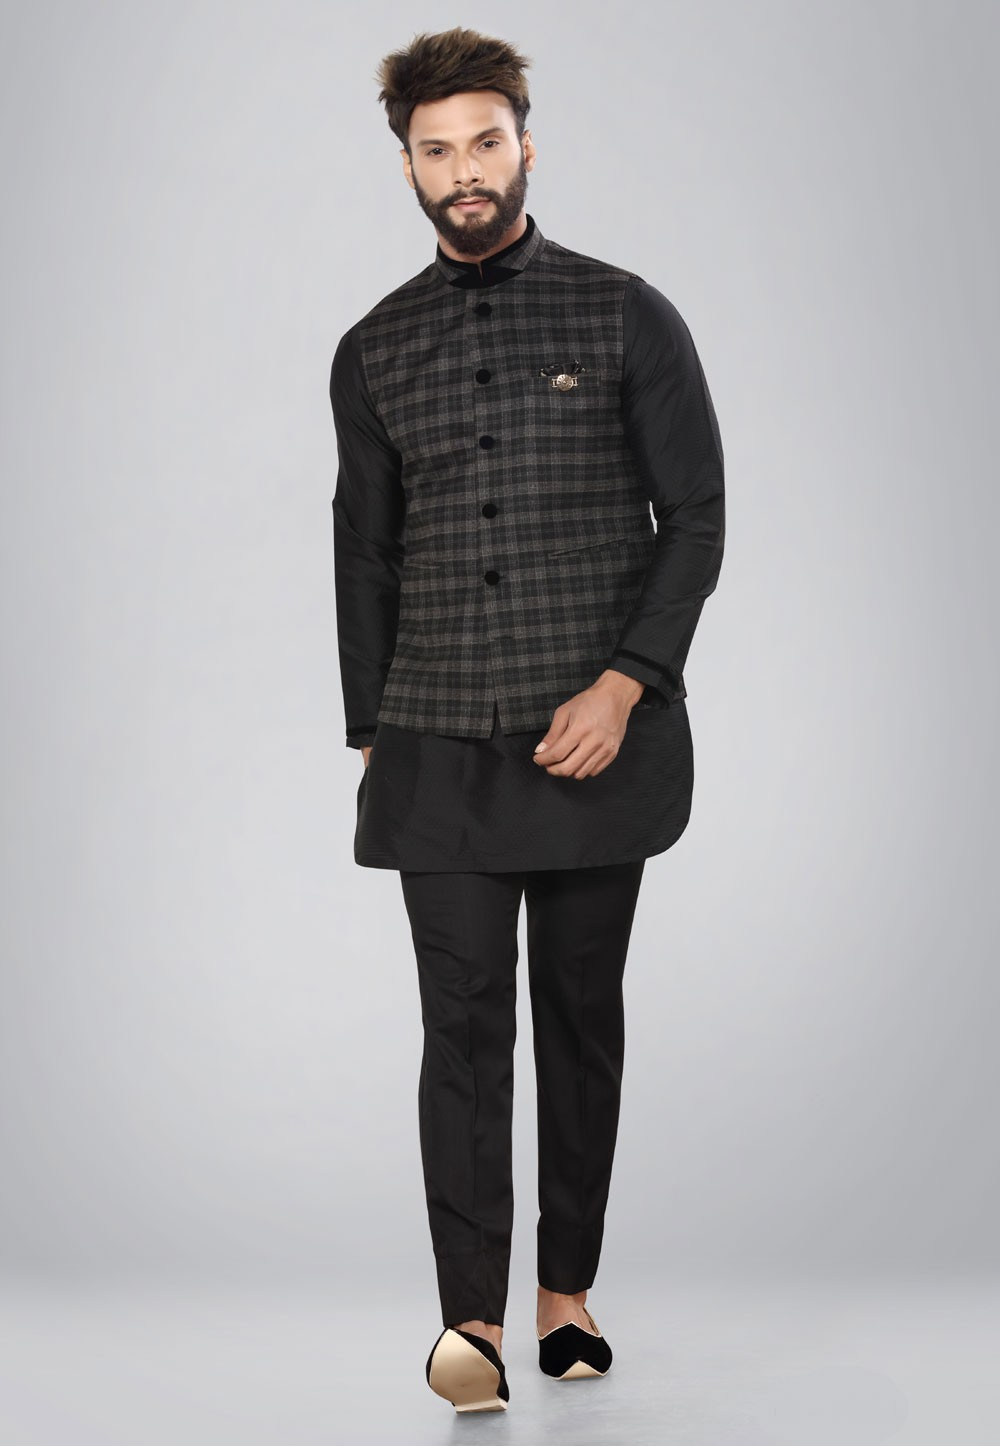 Buy Latest Black kurta pajama with nehru jacket